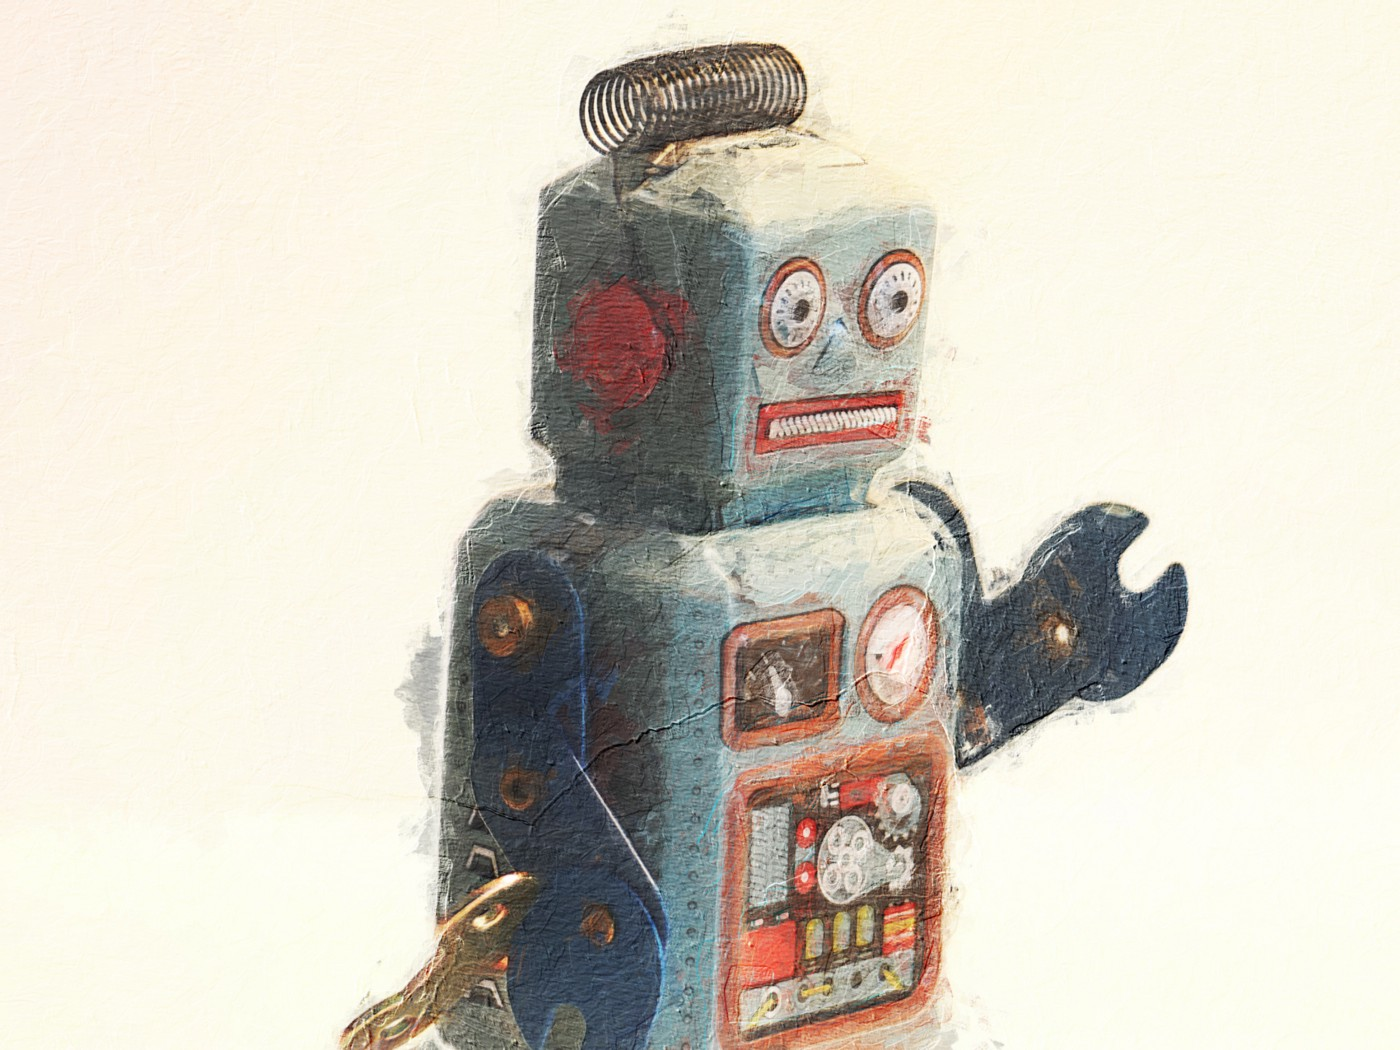 """A toy robot looks to the future of work and apprehensively wonders, """"is this where things are headed?"""""""